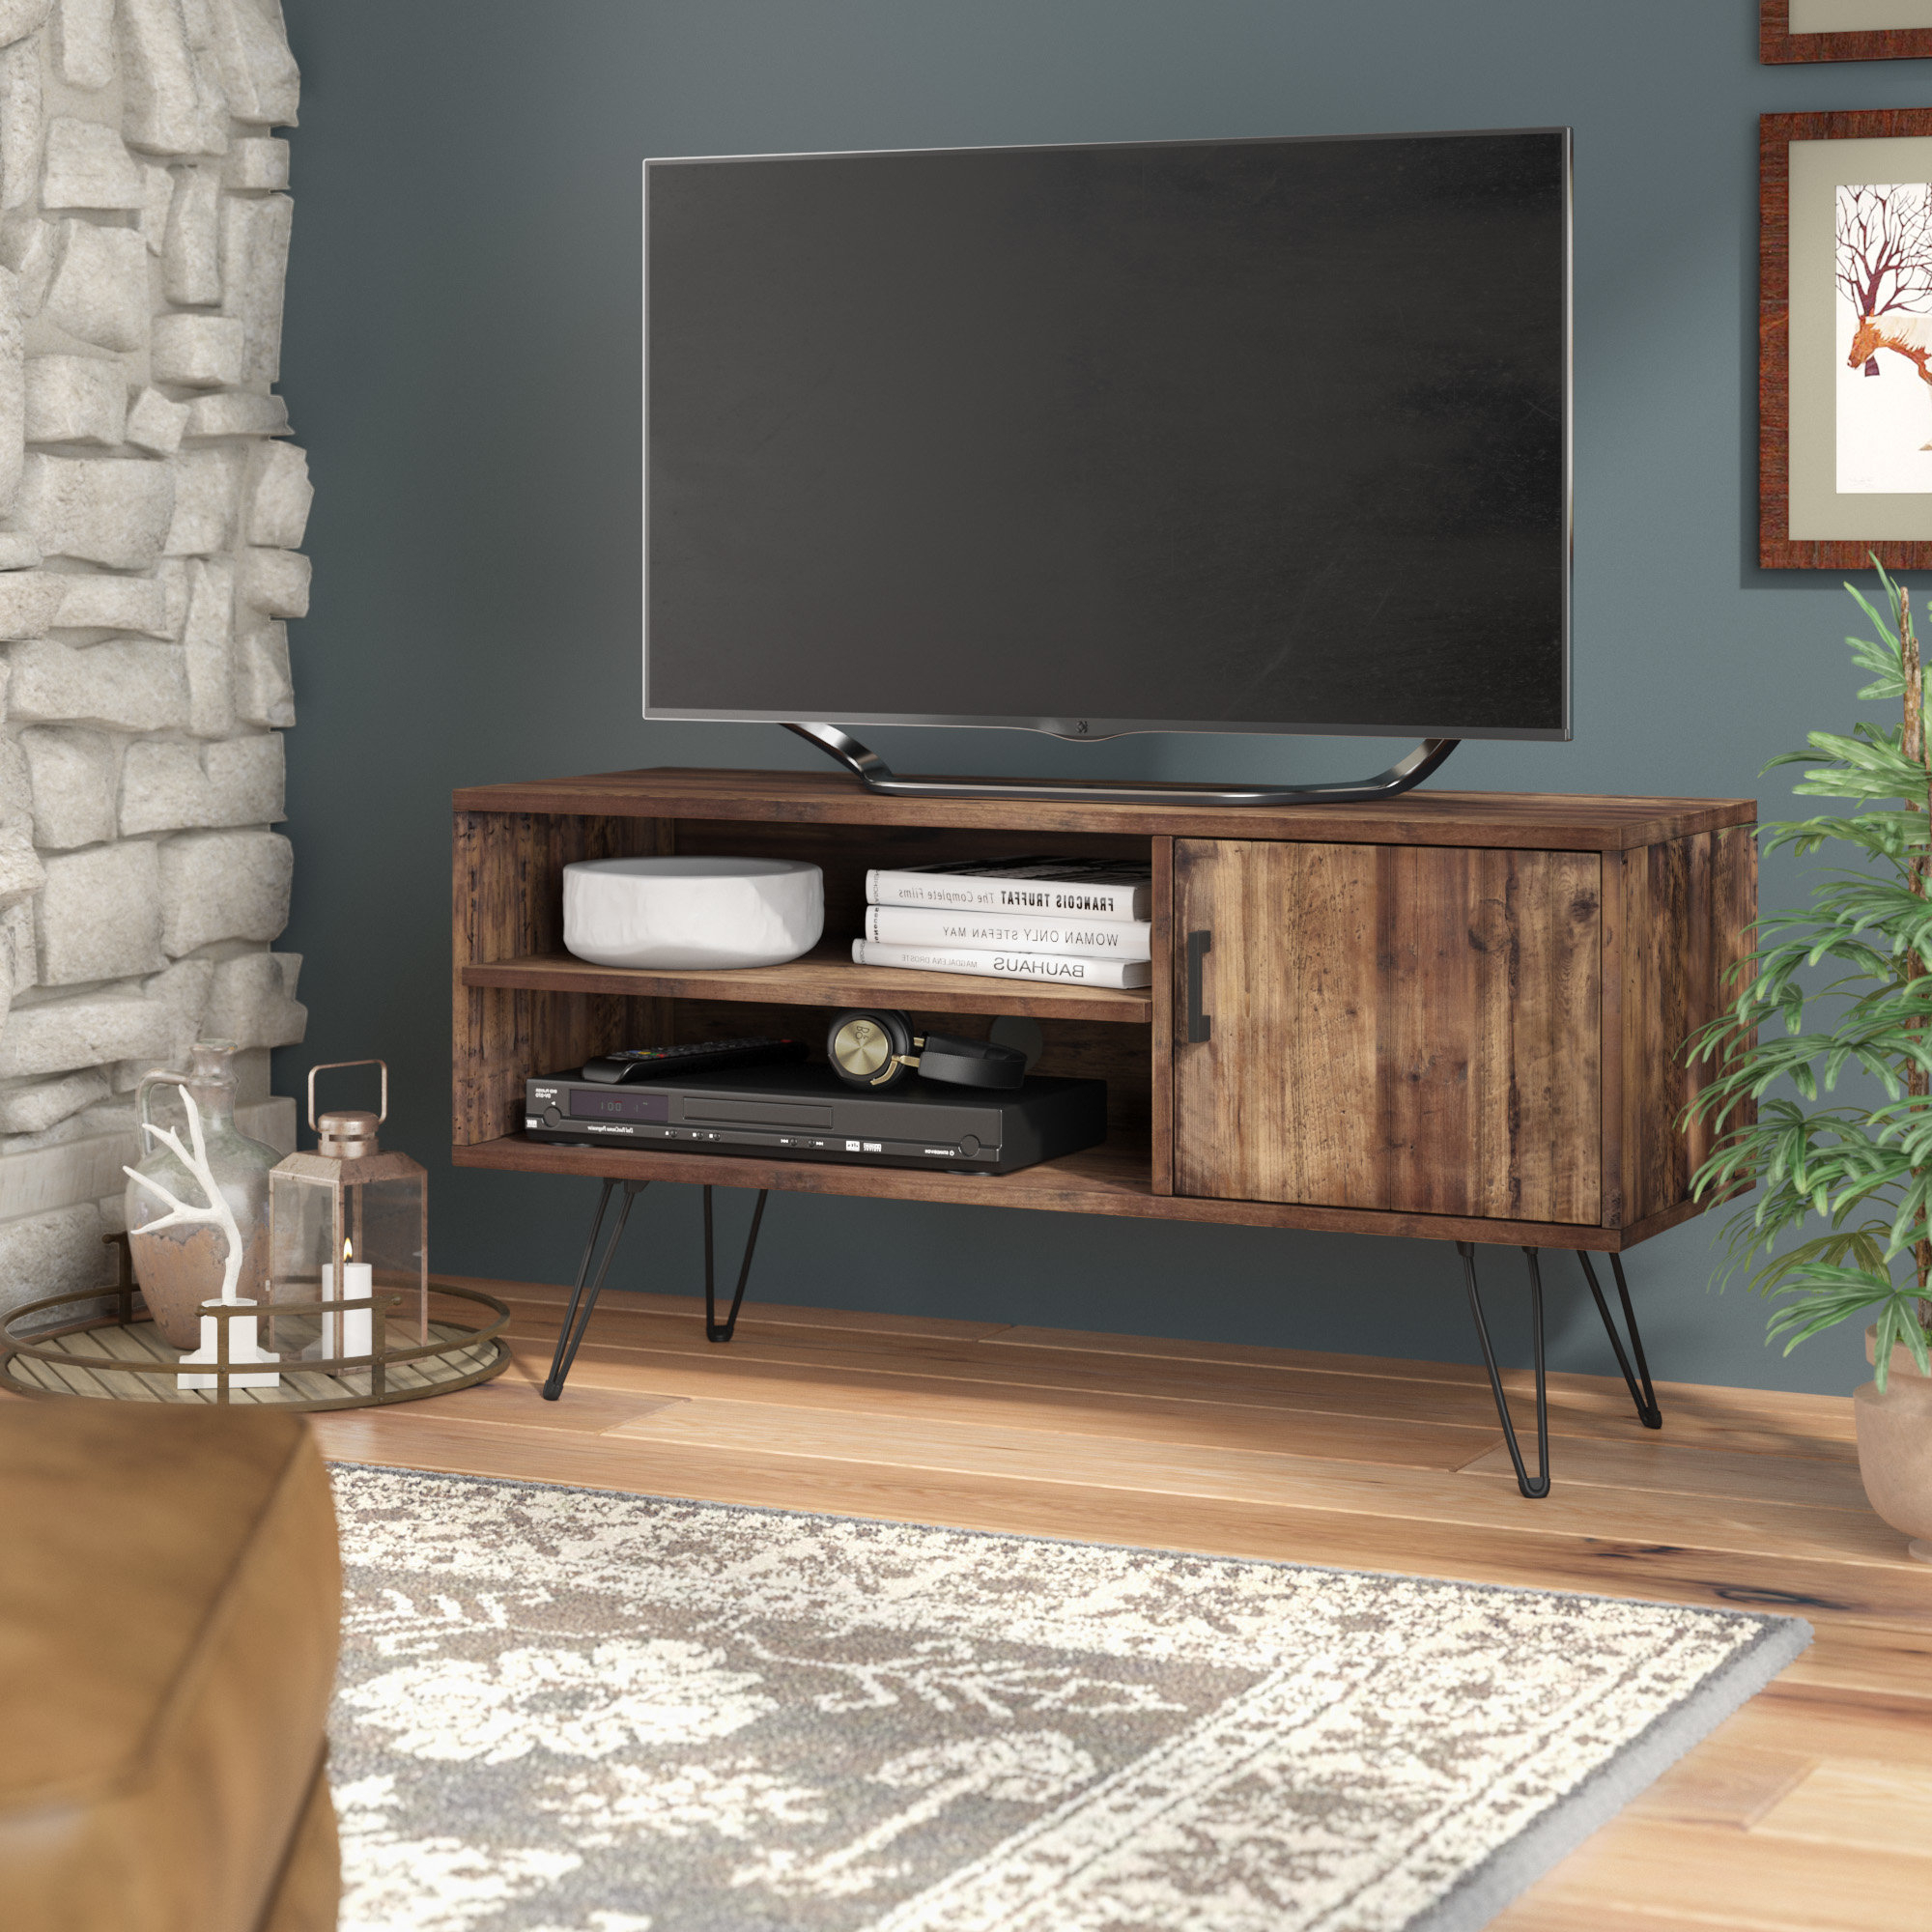 """Best And Newest Barclee Media Tv Stand For Tvs Up To 58"""" In Ericka Tv Stands For Tvs Up To 42"""" (View 5 of 20)"""